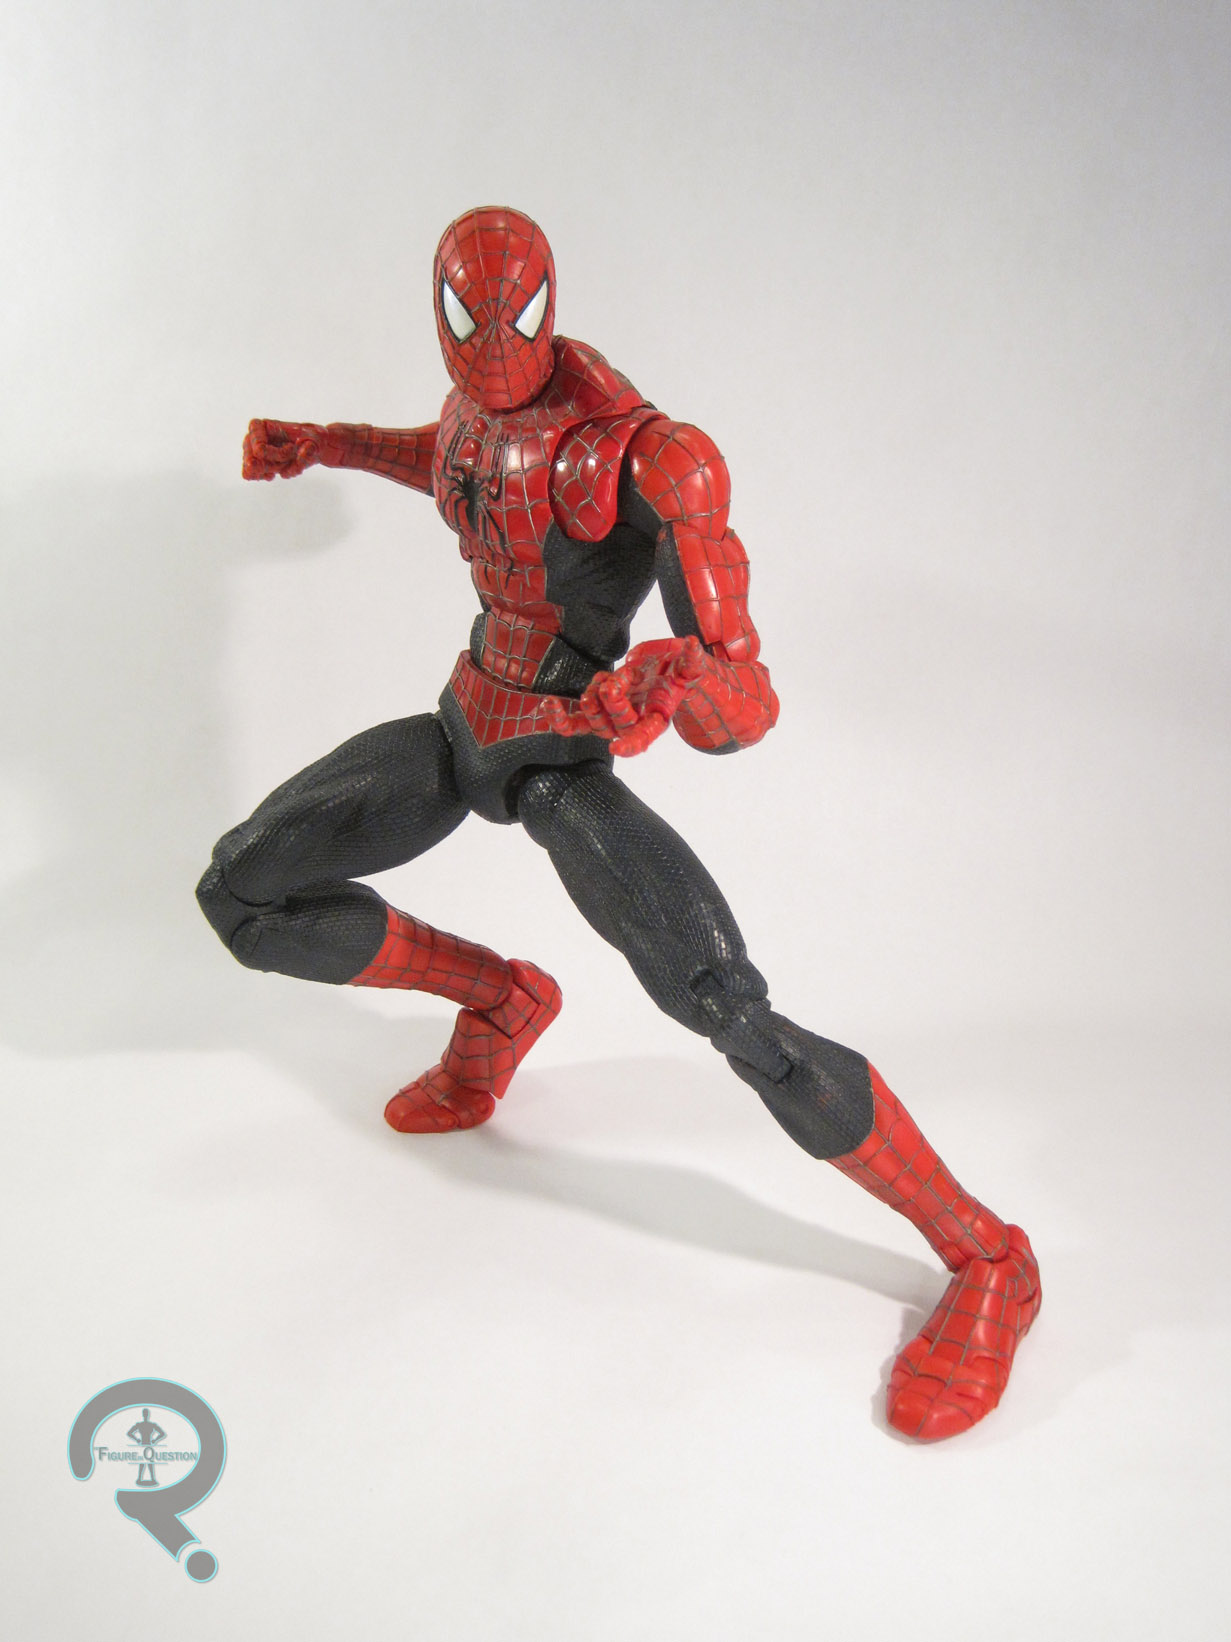 18 Inch Spider Man 2 Toy : Spider man the figure in question